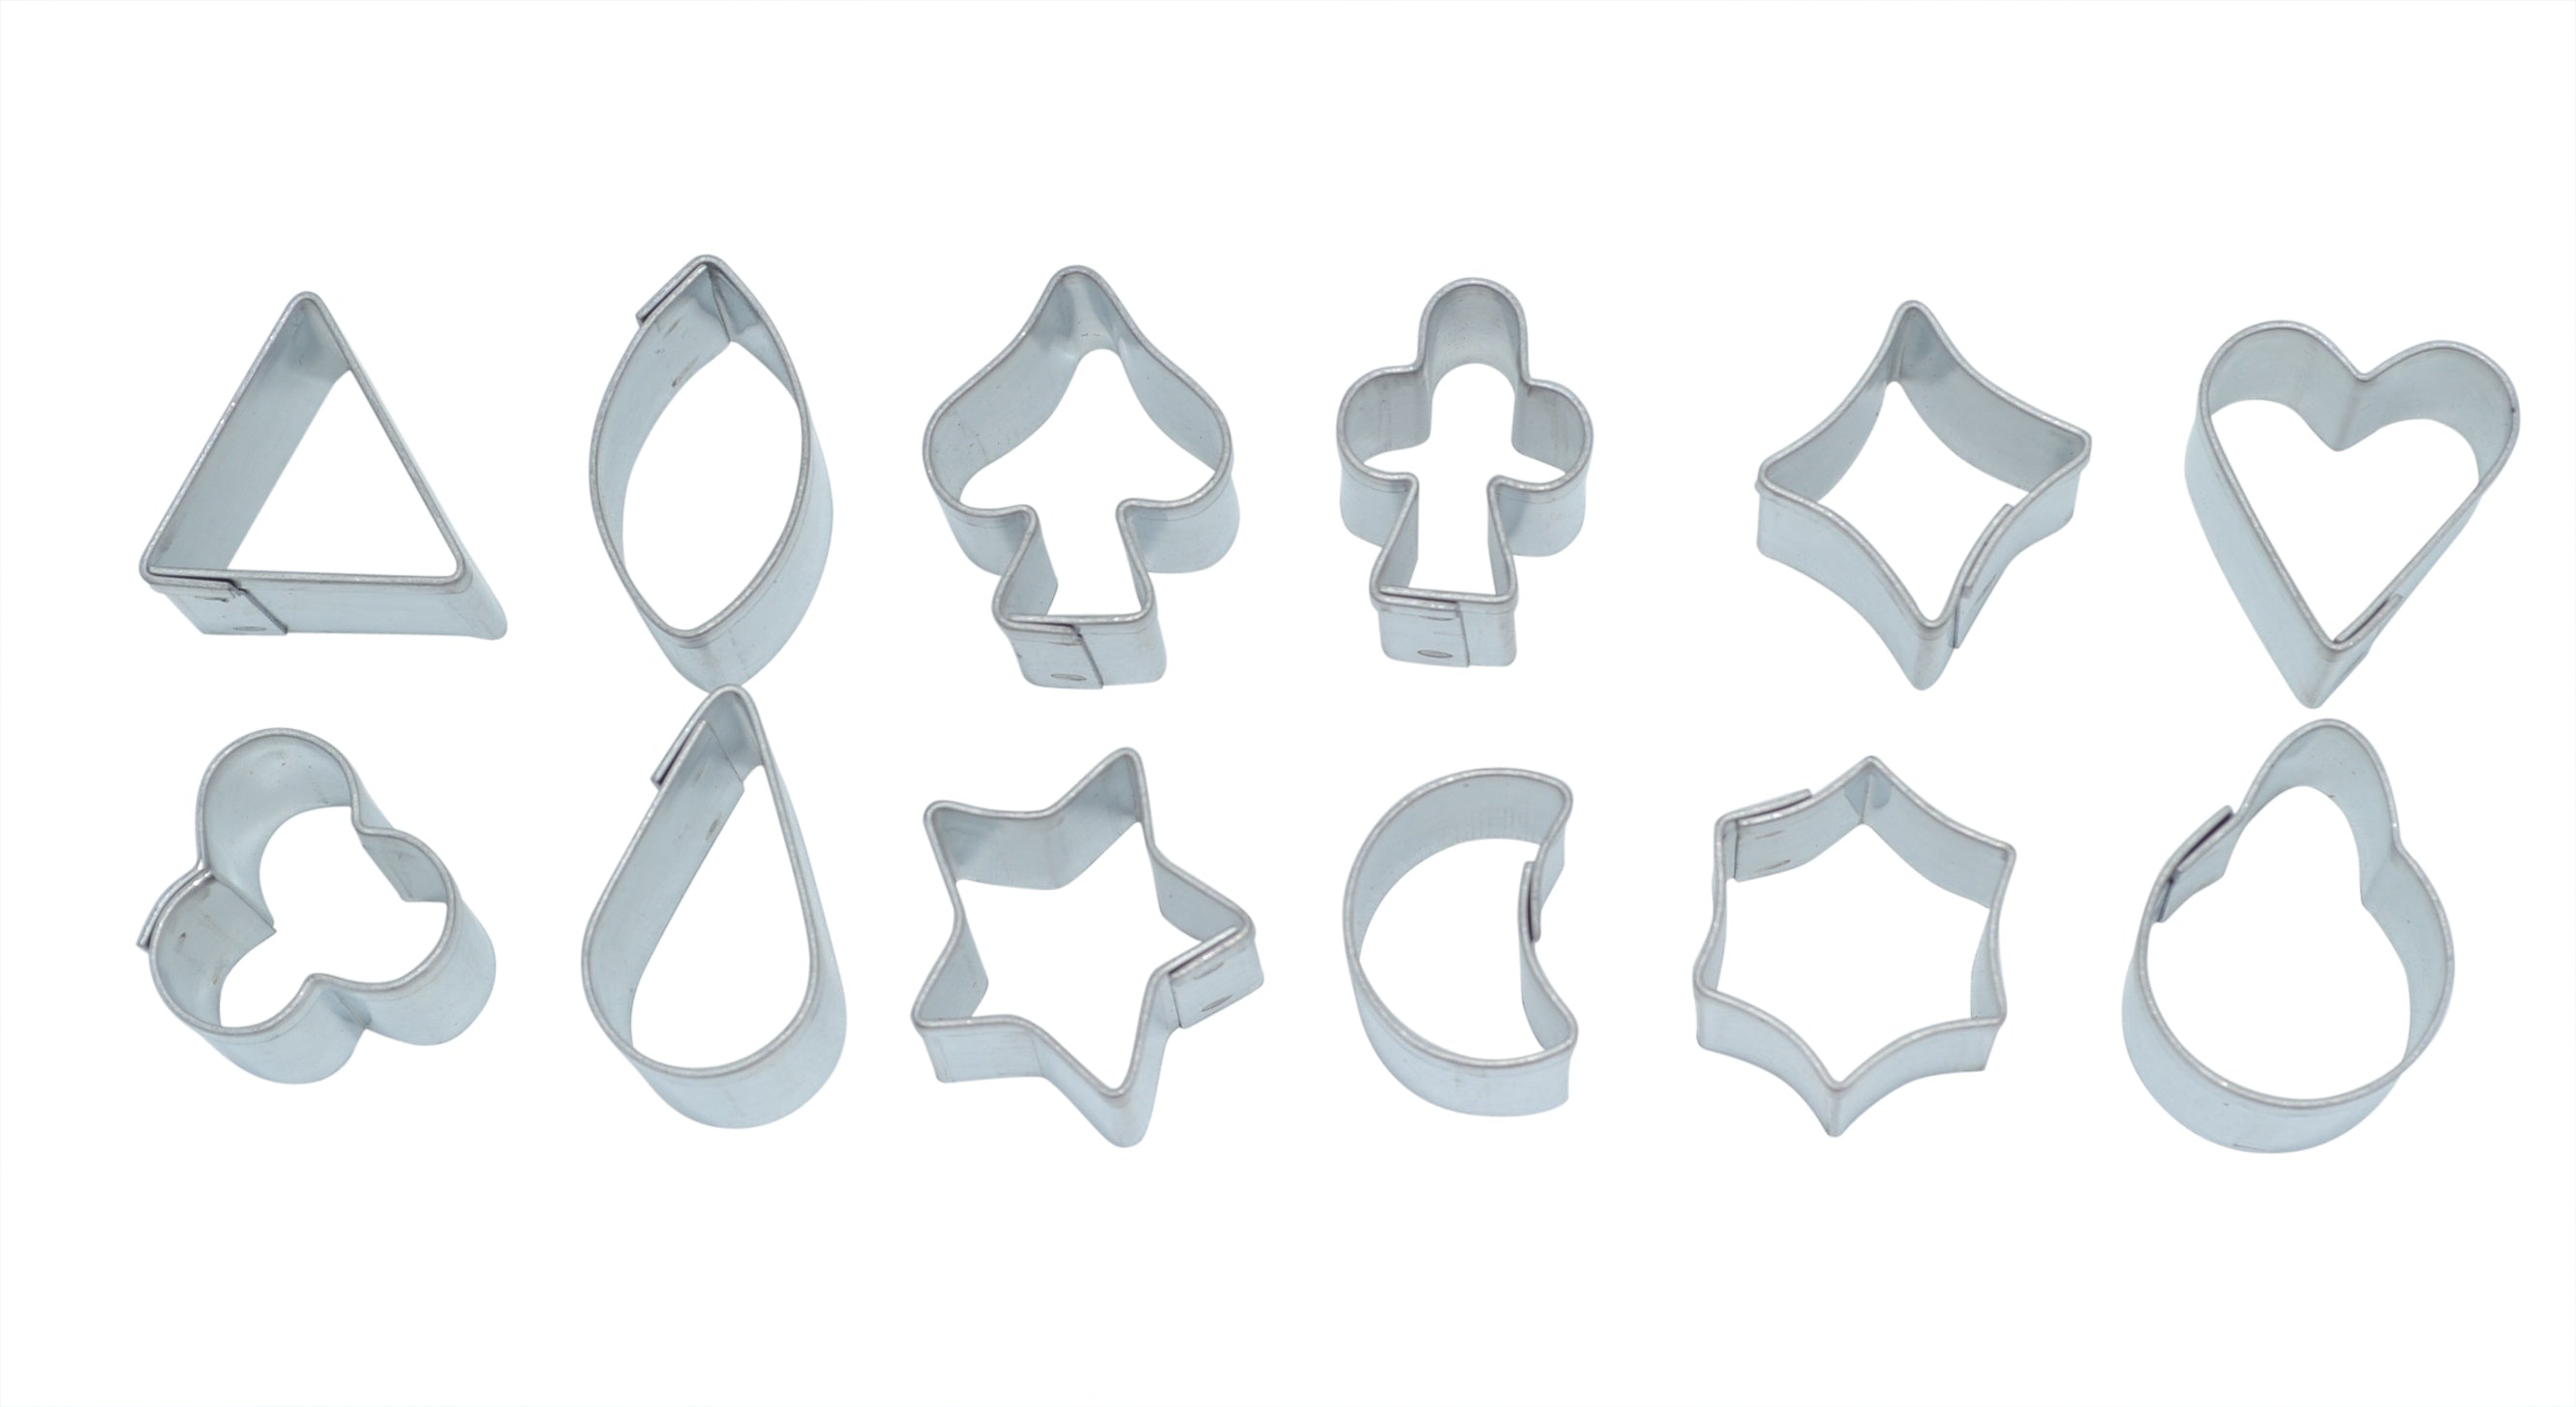 Extra Mini Shapes Aspic Cookie Cutter Set of 12 | Cookie  Cutter Shop Australia